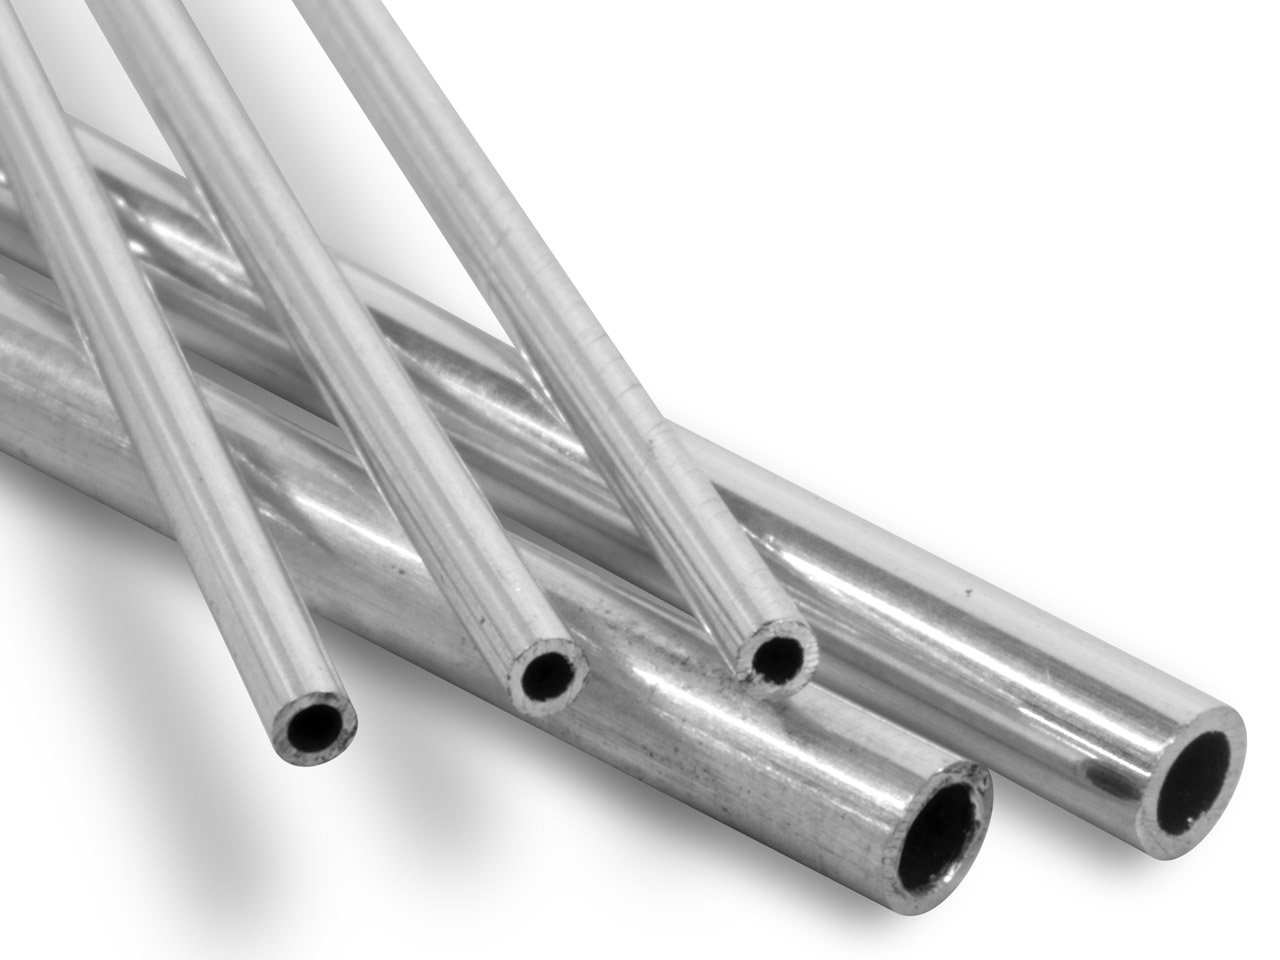 Sterling Silver Tube, Ref 14,      Outside Diameter 1.2mm,            Inside Diameter 0.8mm, 0.2mm Wall  Thickness